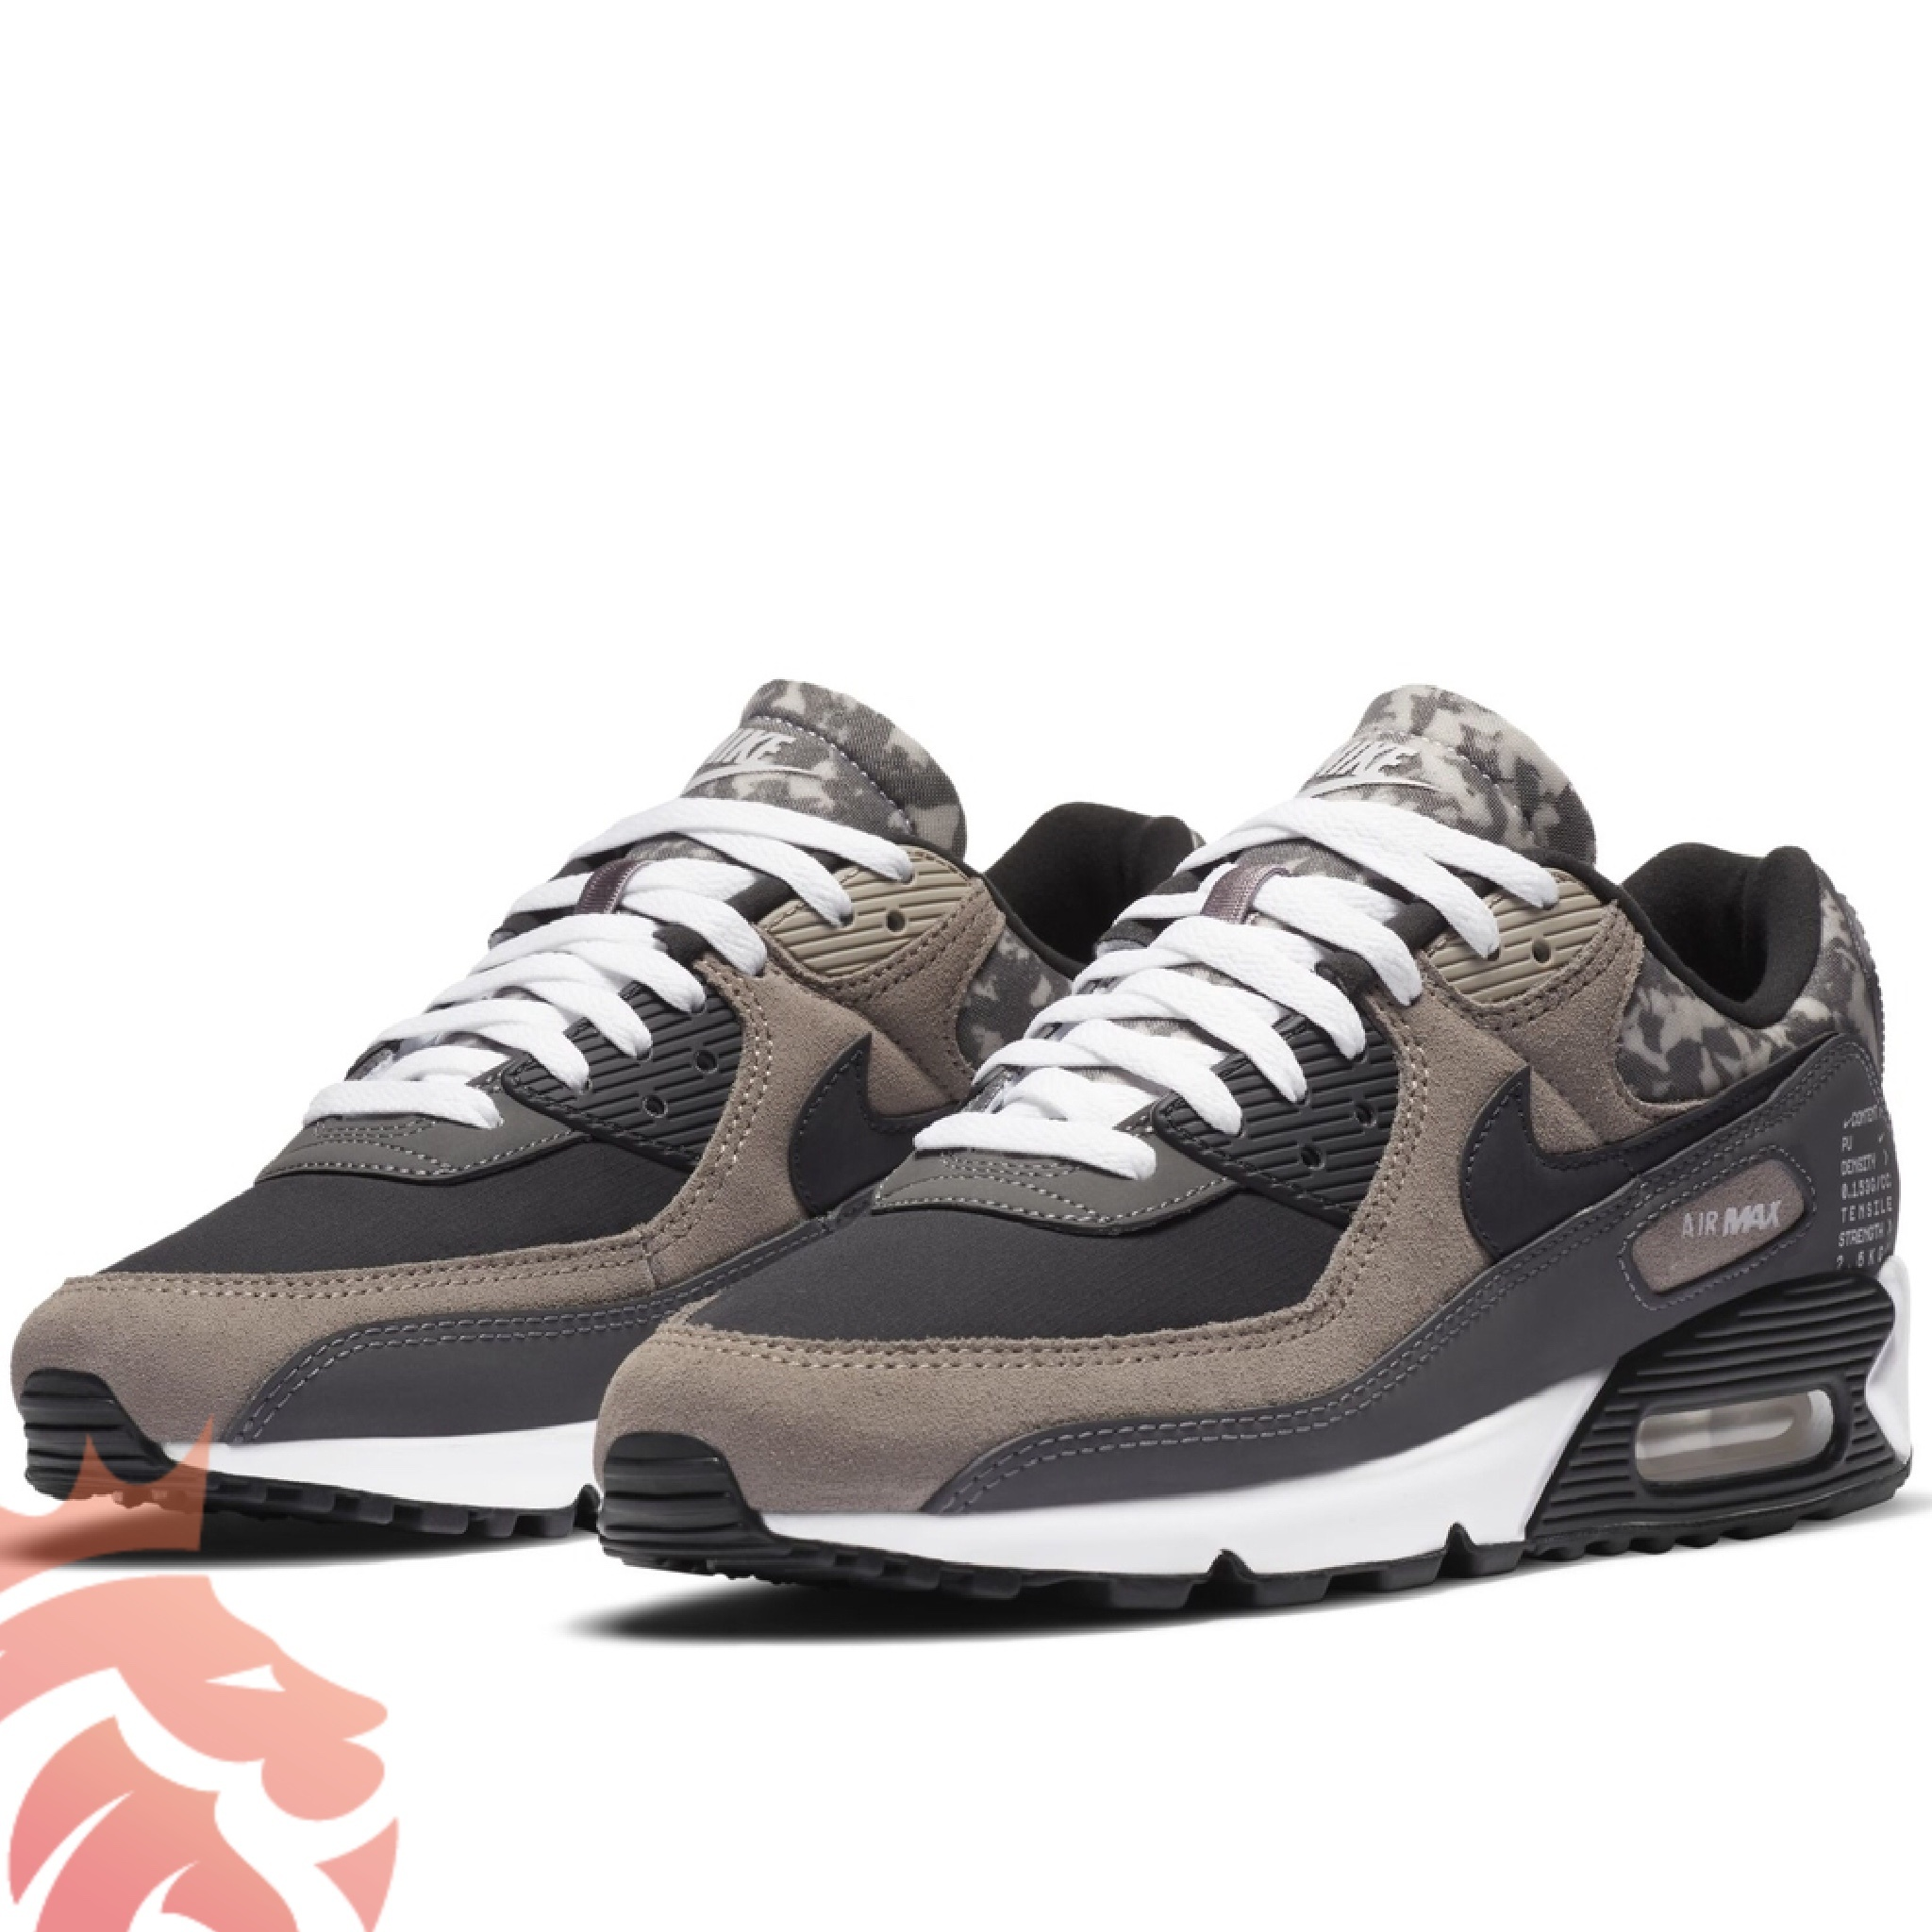 Nike Air Max 90 SE Enigma Stone/ Off Noir/ Iron Grey/White